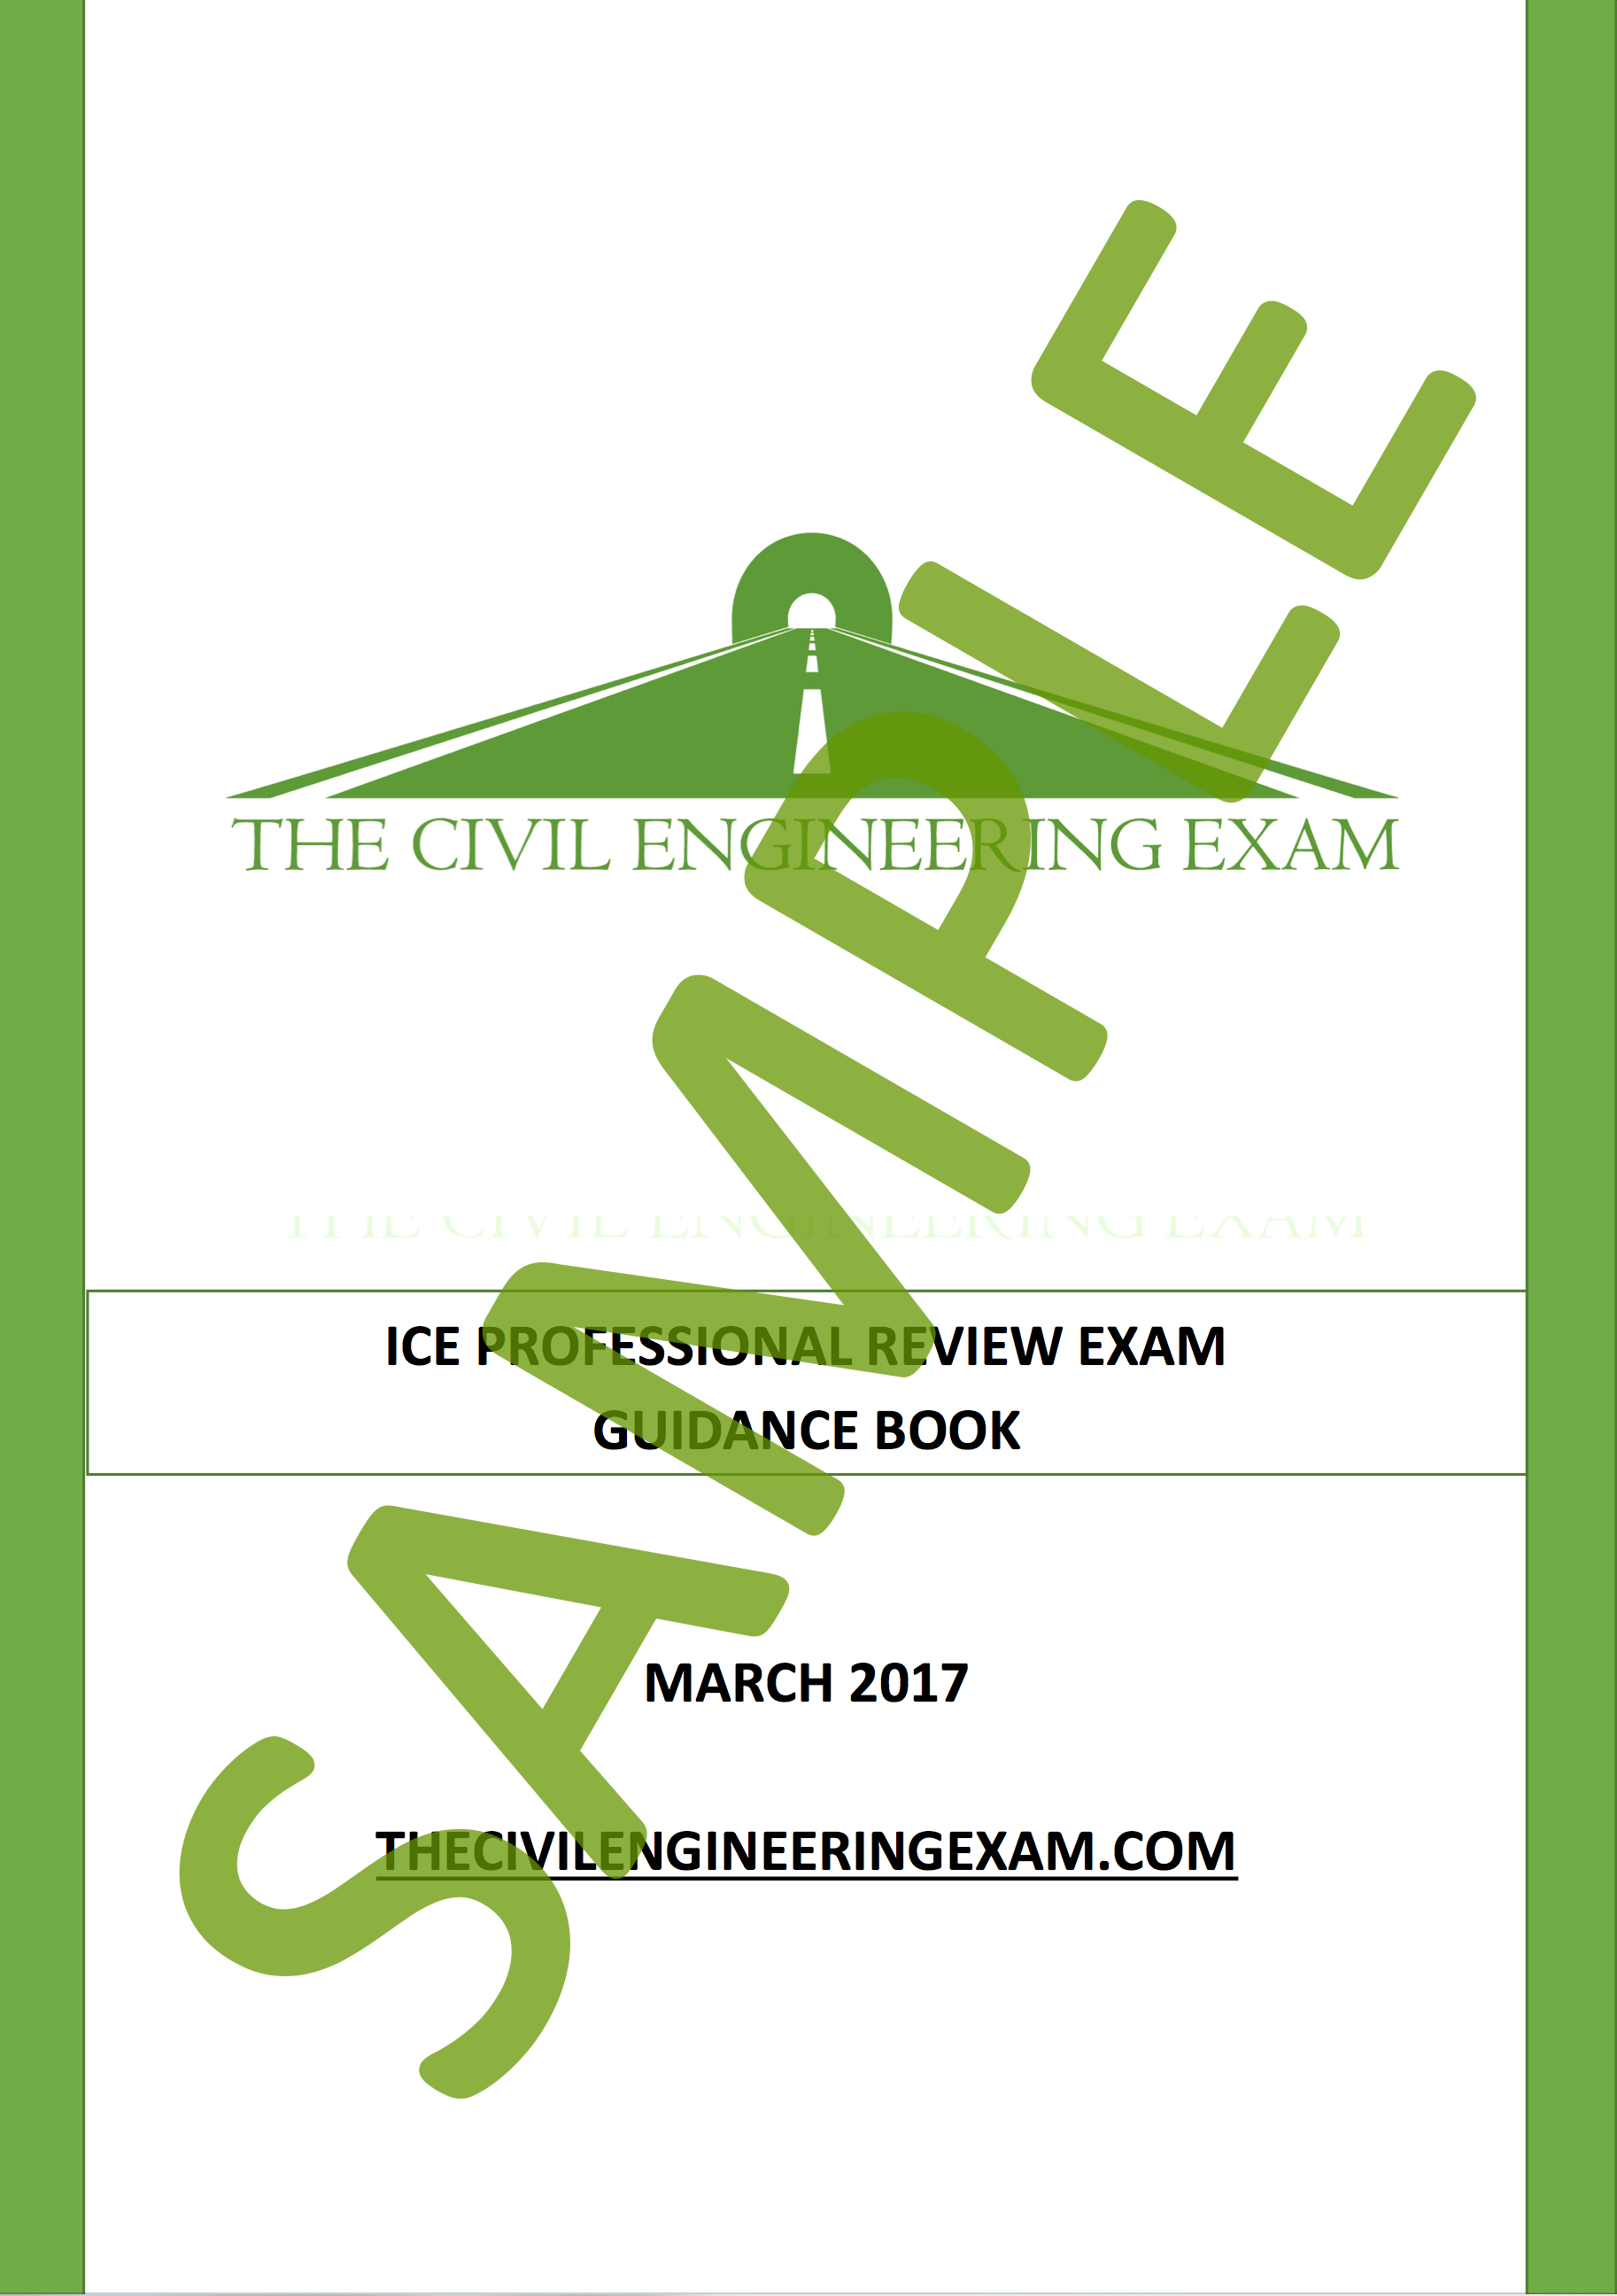 ice professional review exam guidance pack sample  civil engineering exam